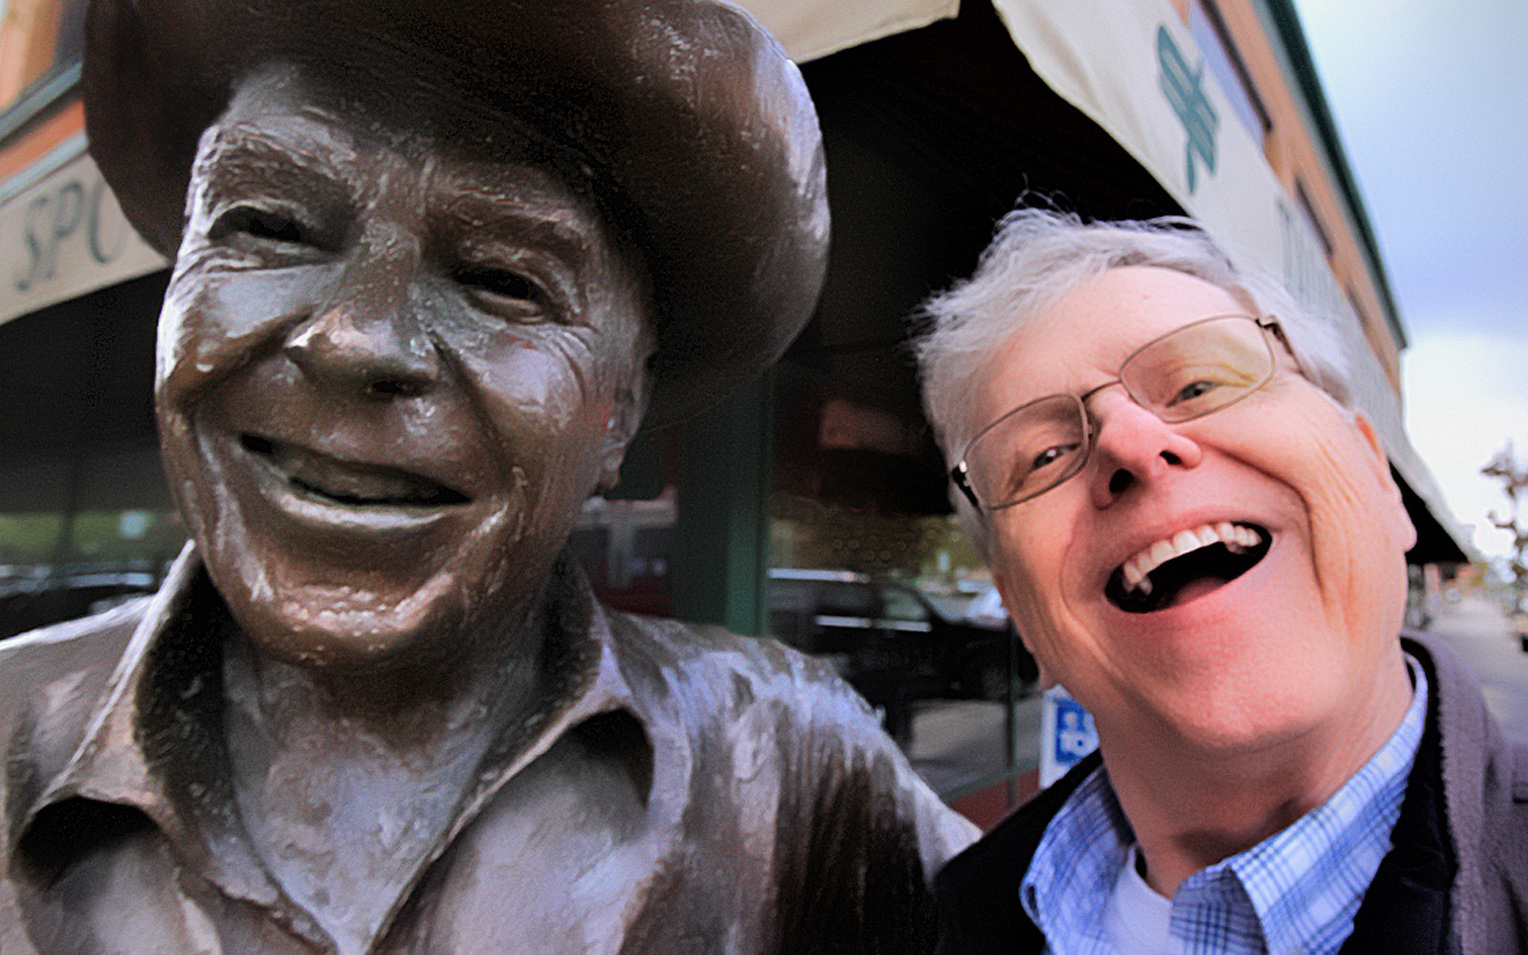 Ronnie and Me - Digital (Selfie) - Name Withheld Per Request